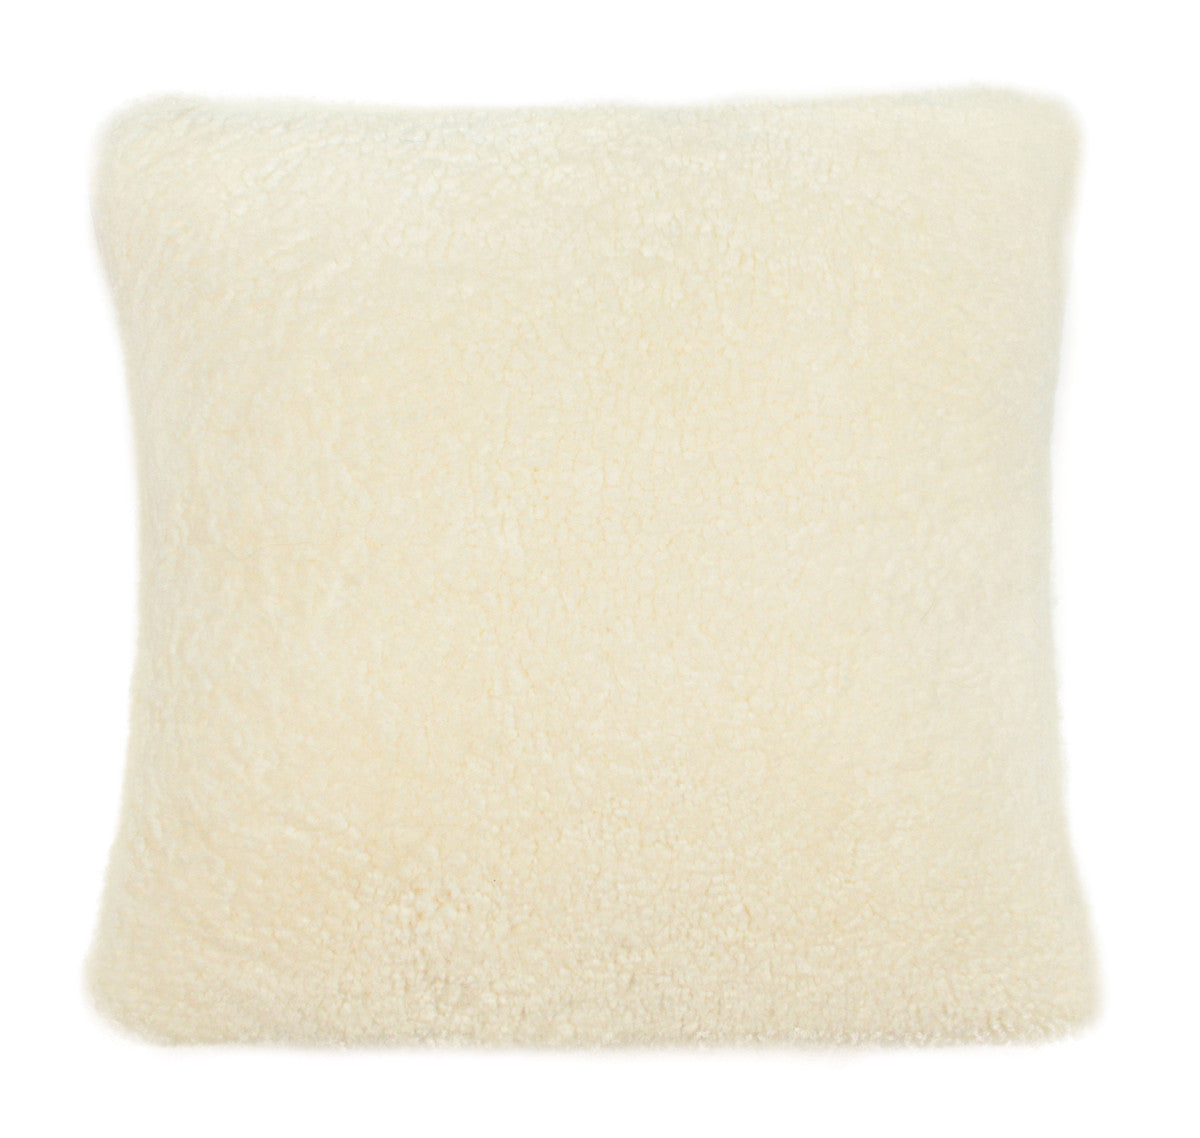 "New Zealand Sheepskin 20"" Pillow"